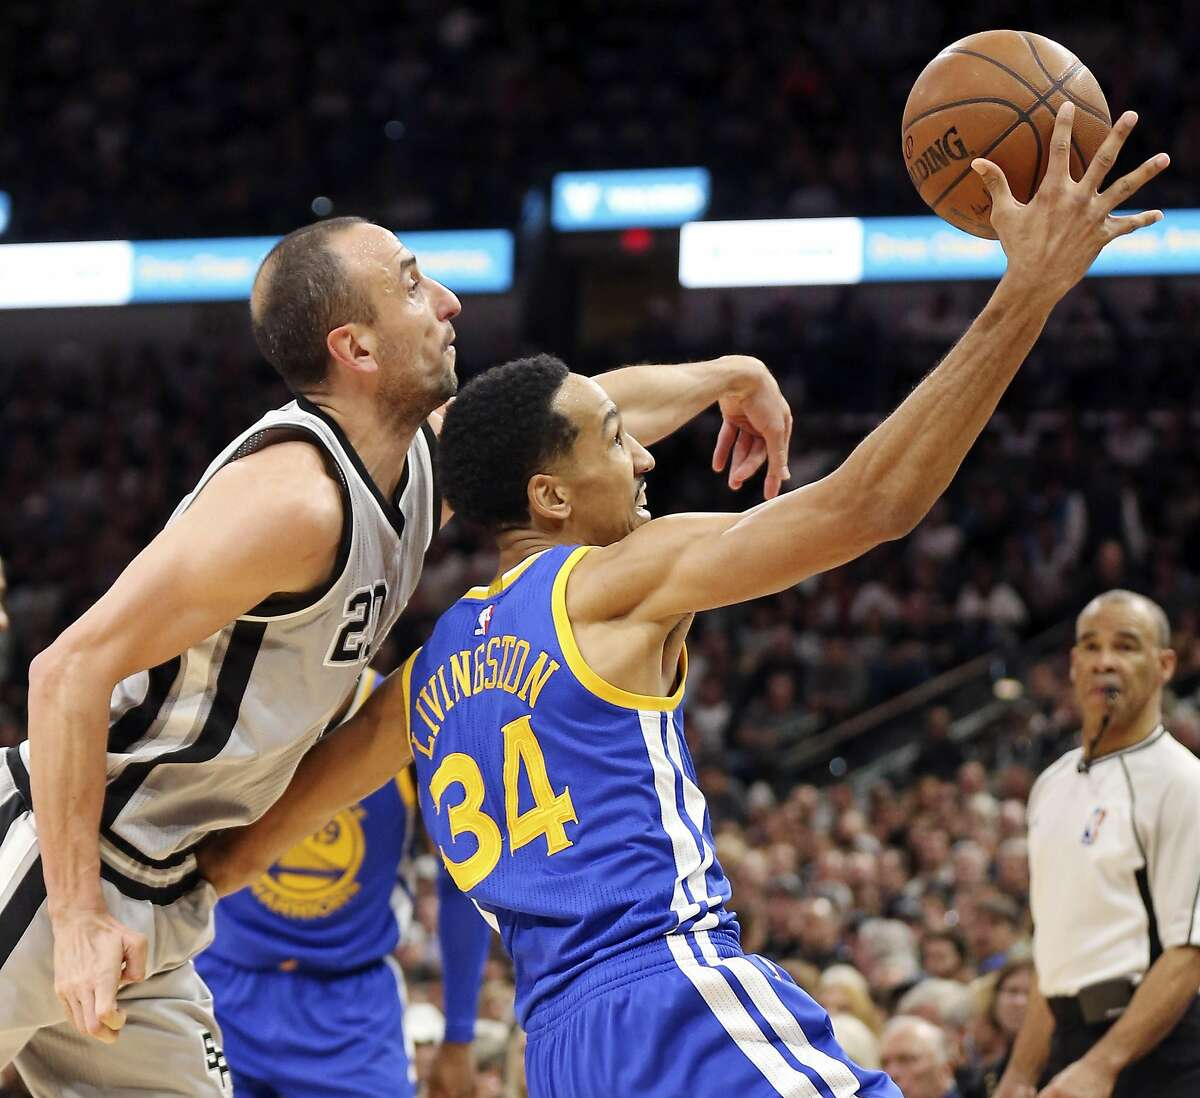 San Antonio Spurs' Manu Ginobili and Golden State Warriors' Shaun Livingston struggle for control of the ball during second half action Saturday March 19, 2016 at the AT&T Center. Ginobili was called for a foul on the play. The Spurs won 87-79.